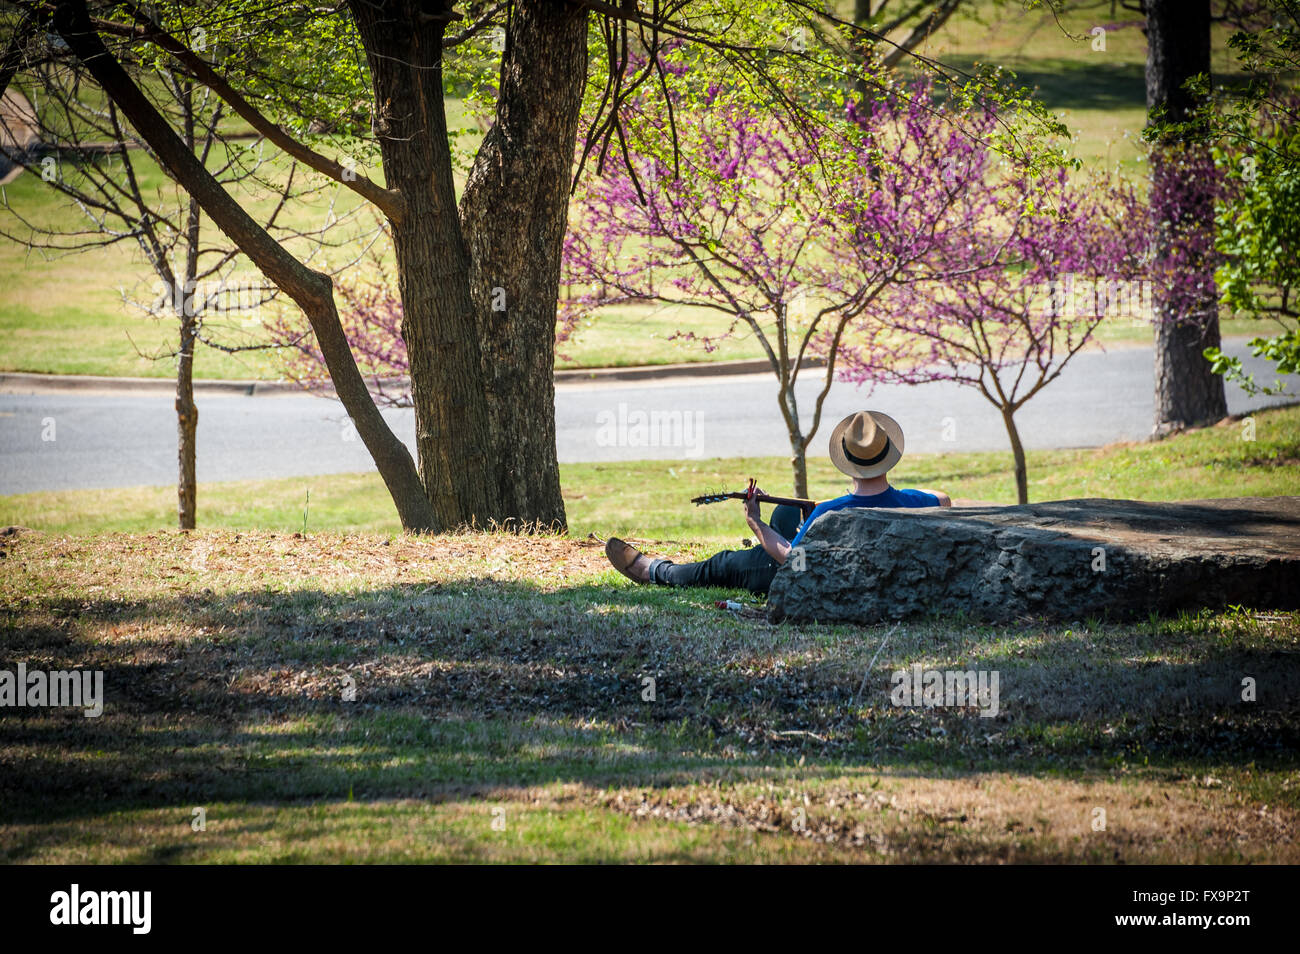 Guitar player enjoying a relaxing springtime afternoon at Honor Heights Park in Muskogee, Oklahoma, USA. Stock Photo